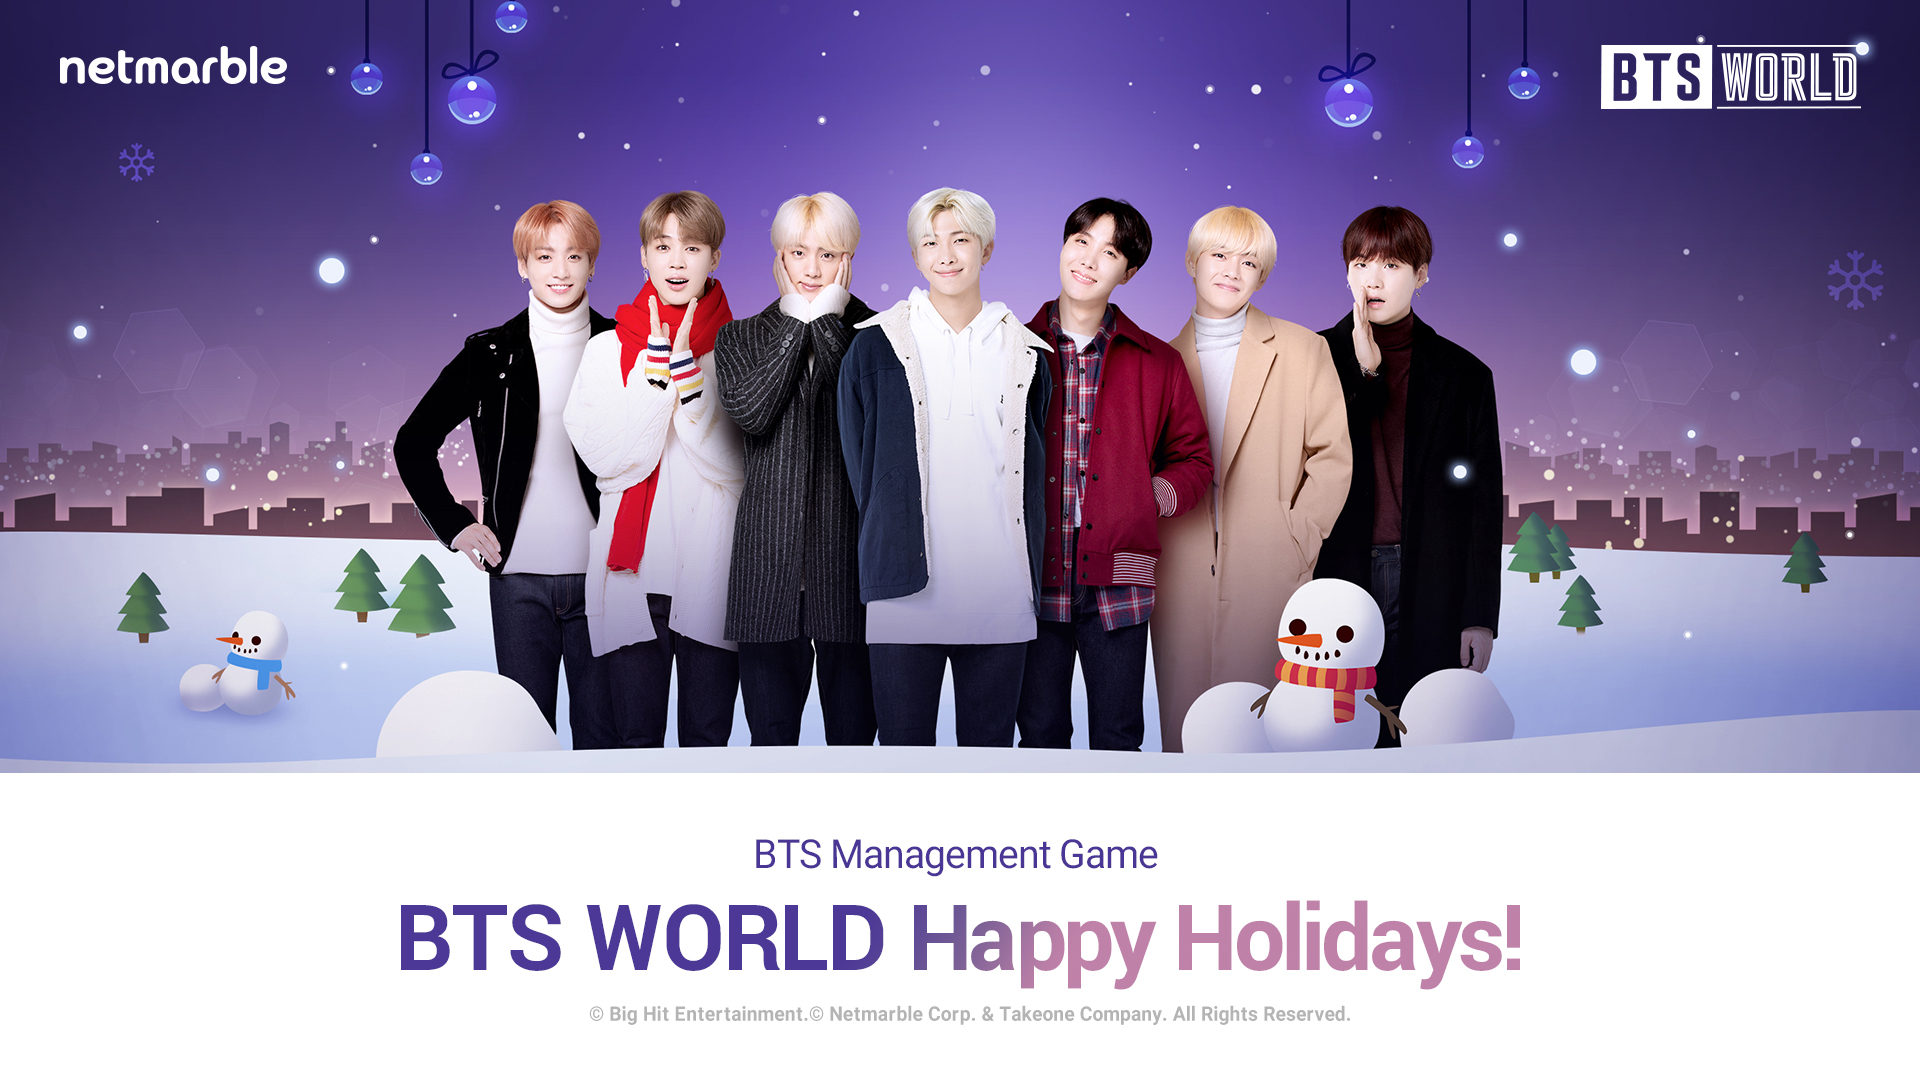 bts world winter guncelleme netmarble